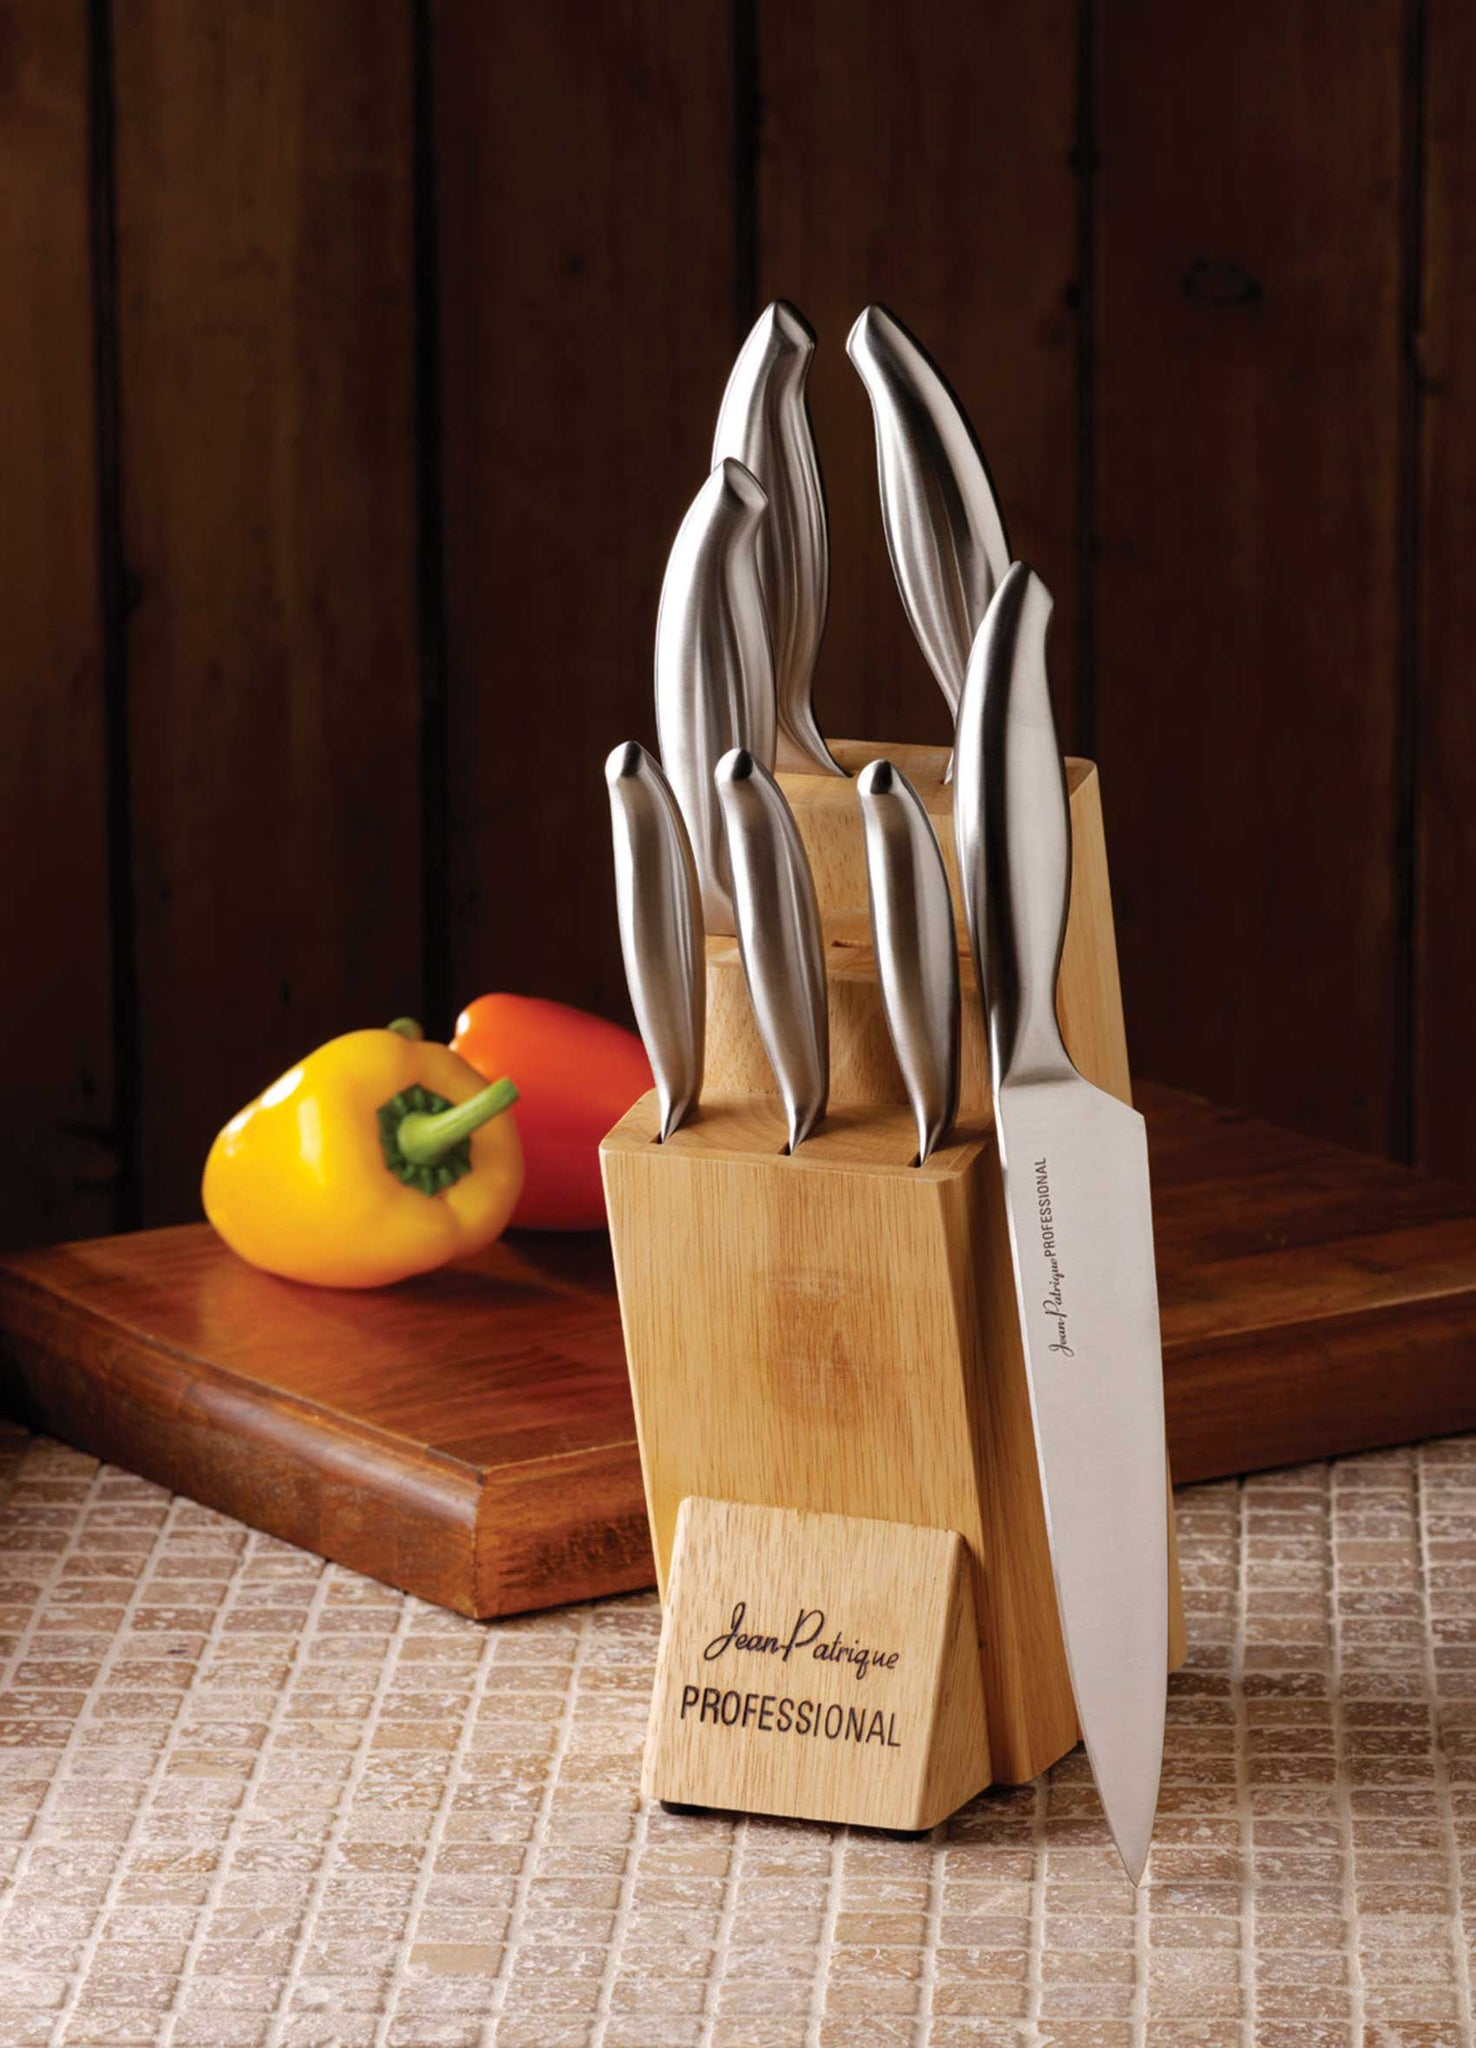 Professional Kitchen Knife Set & Wooden Knife Block - Set of 7